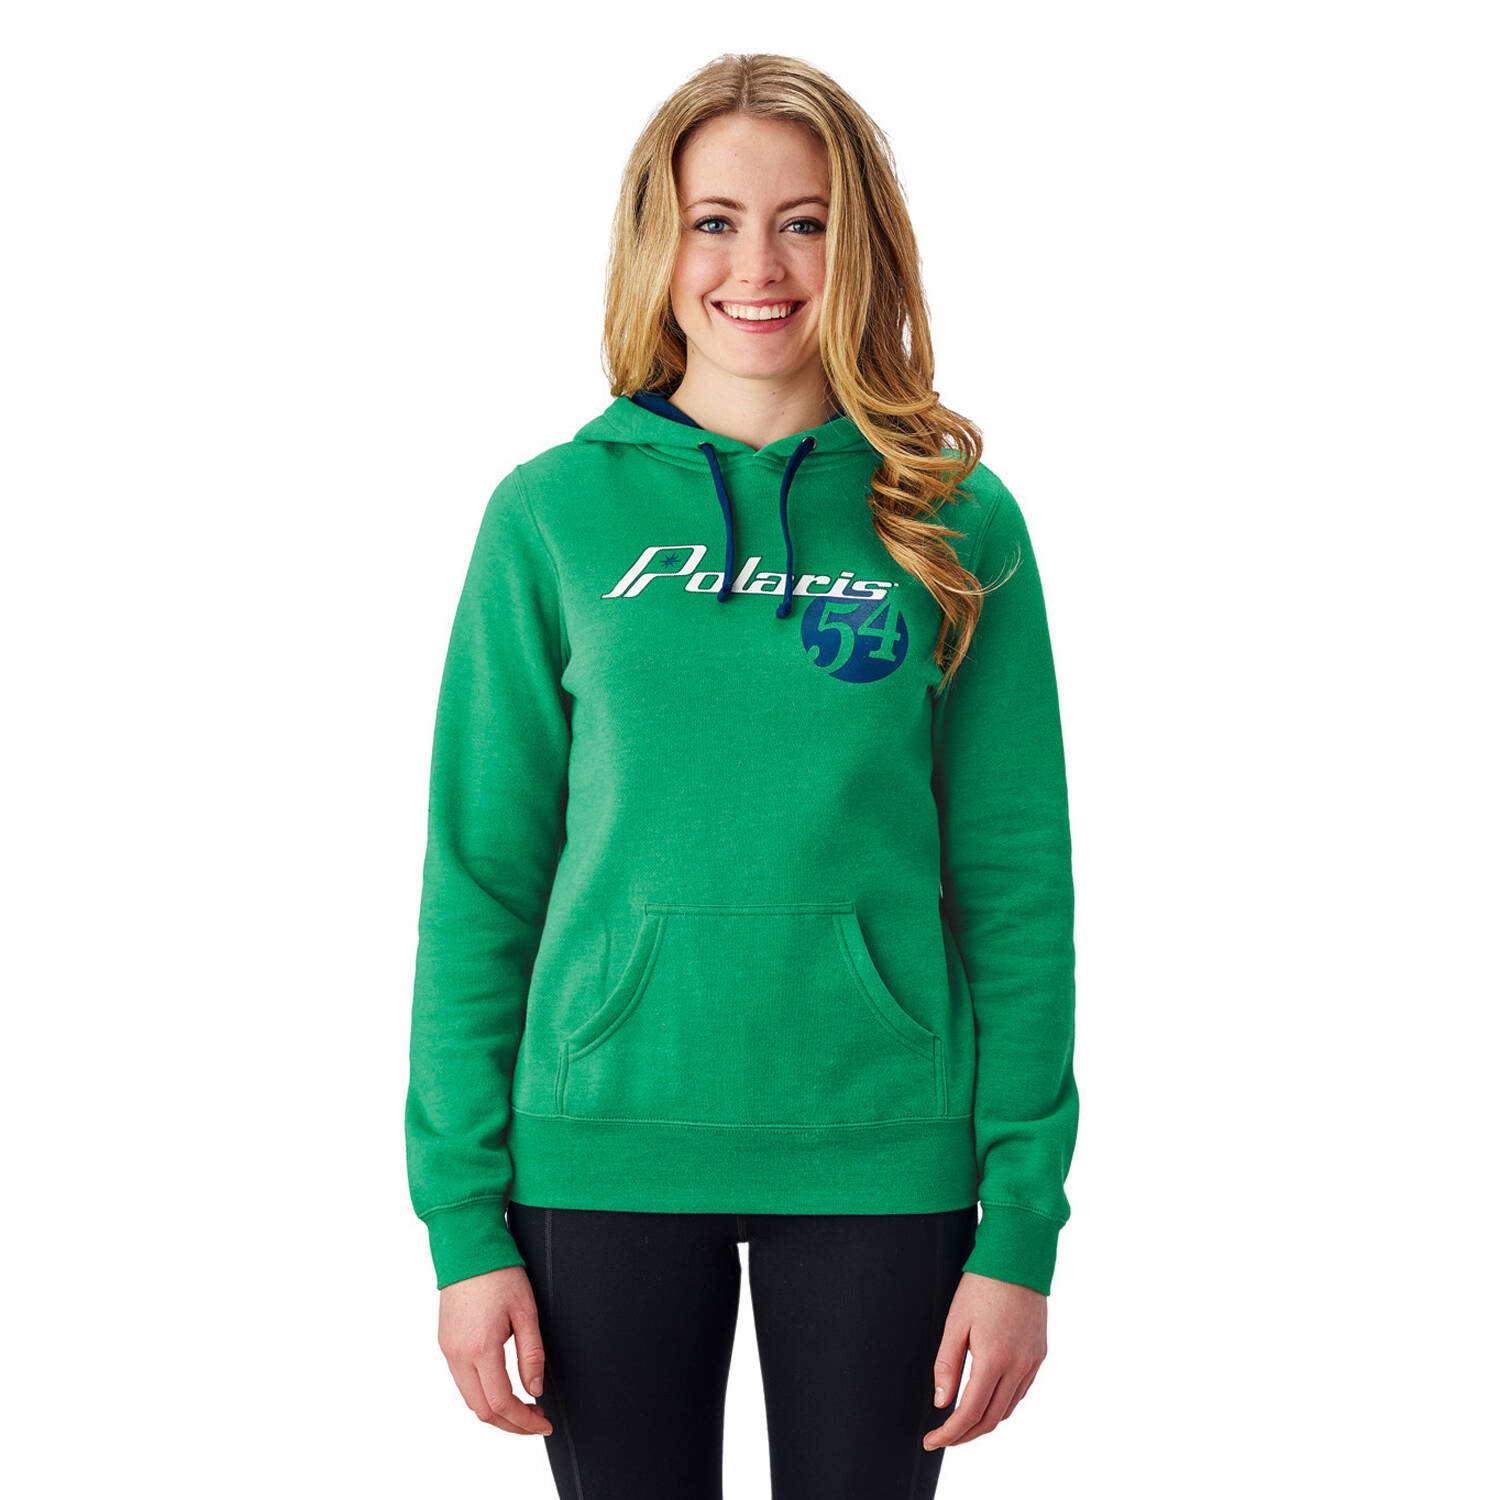 Women's Retro Hoodie Sweatshirt with Polaris® Logo, Kelly Green